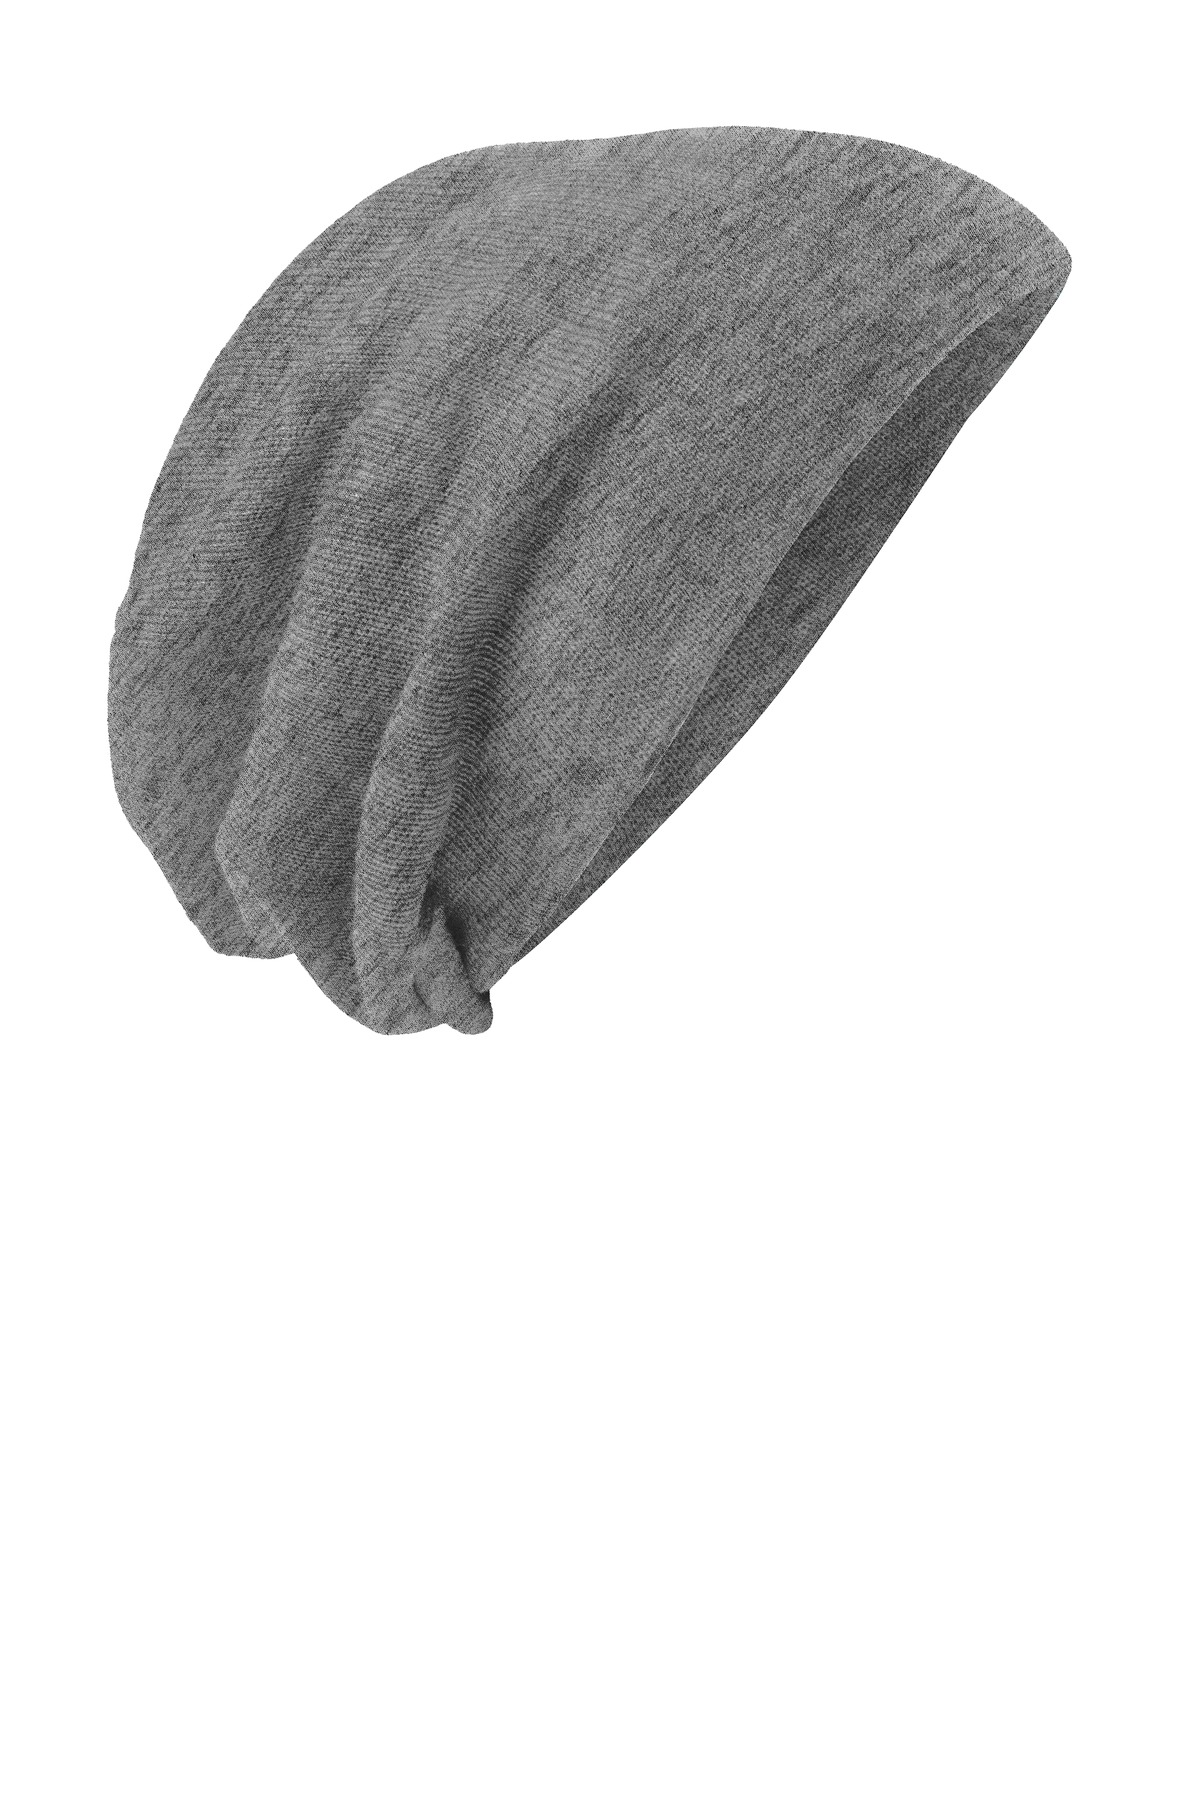 District ®  Slouch Beanie DT618 - Light Grey Heather